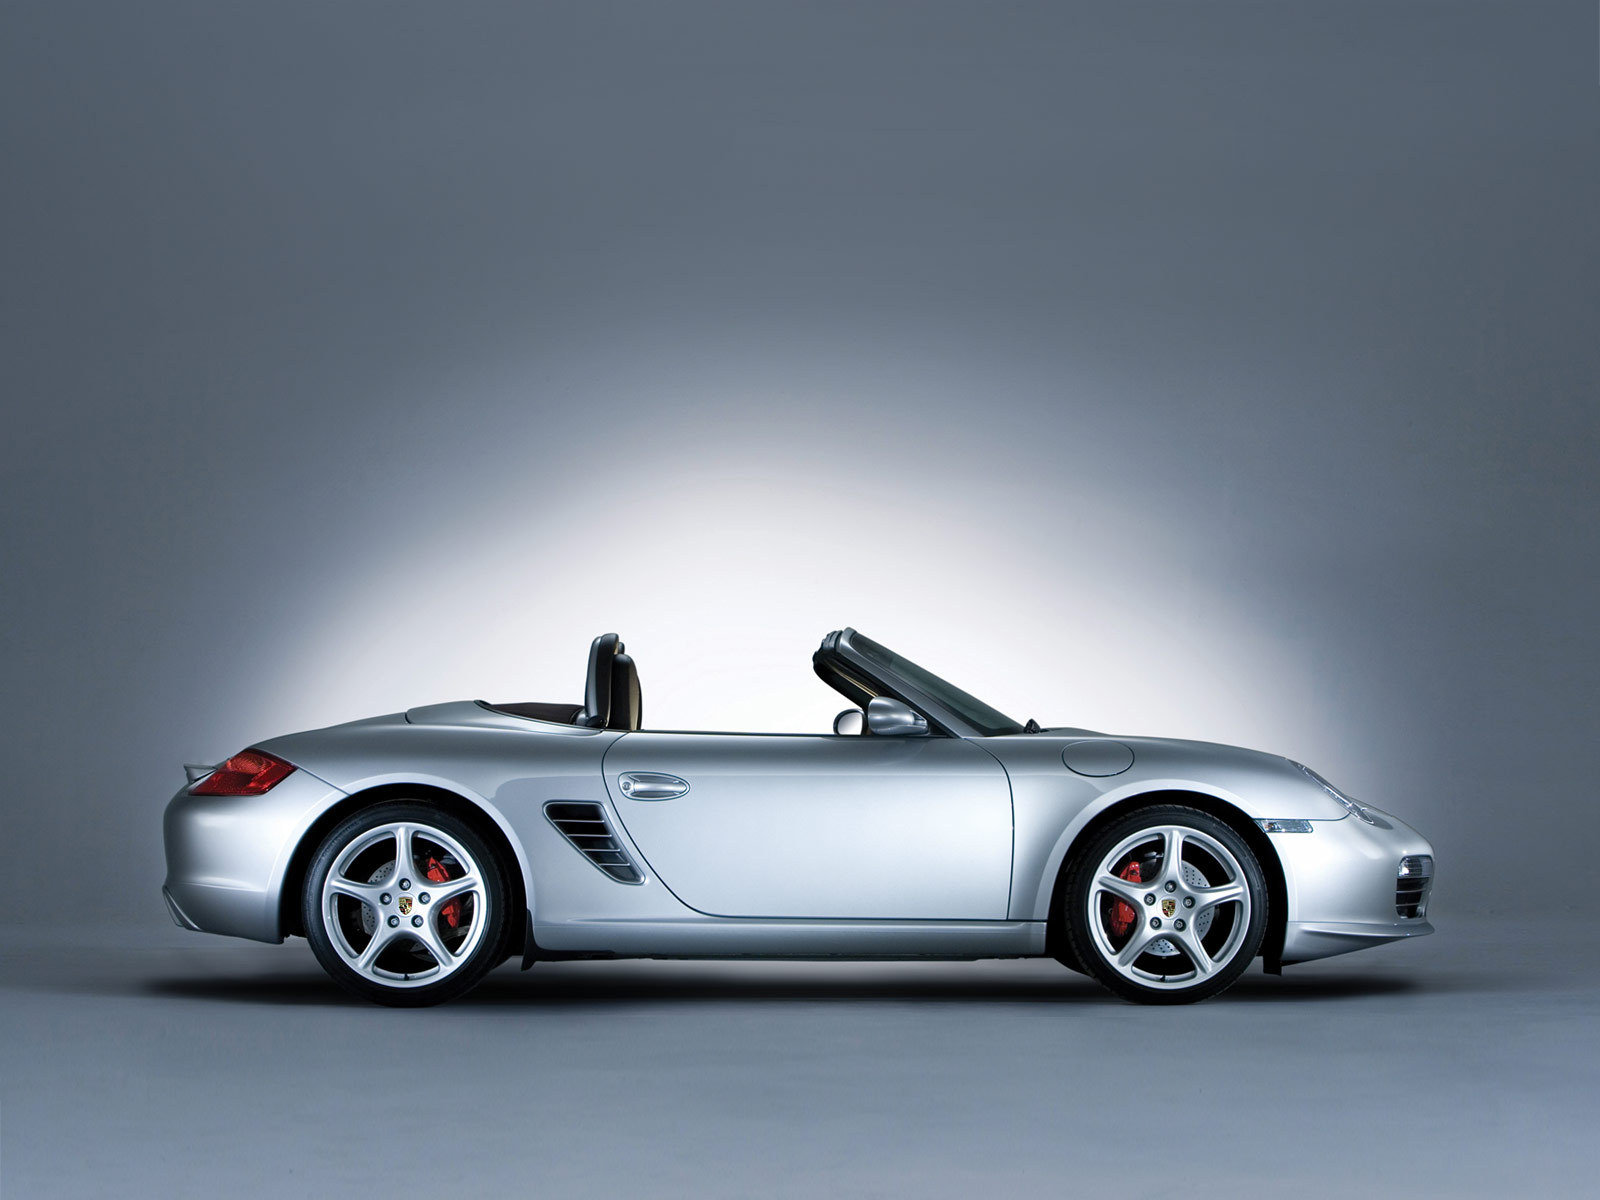 2007 porsche boxster s sport edition picture 200687 car review top speed. Black Bedroom Furniture Sets. Home Design Ideas